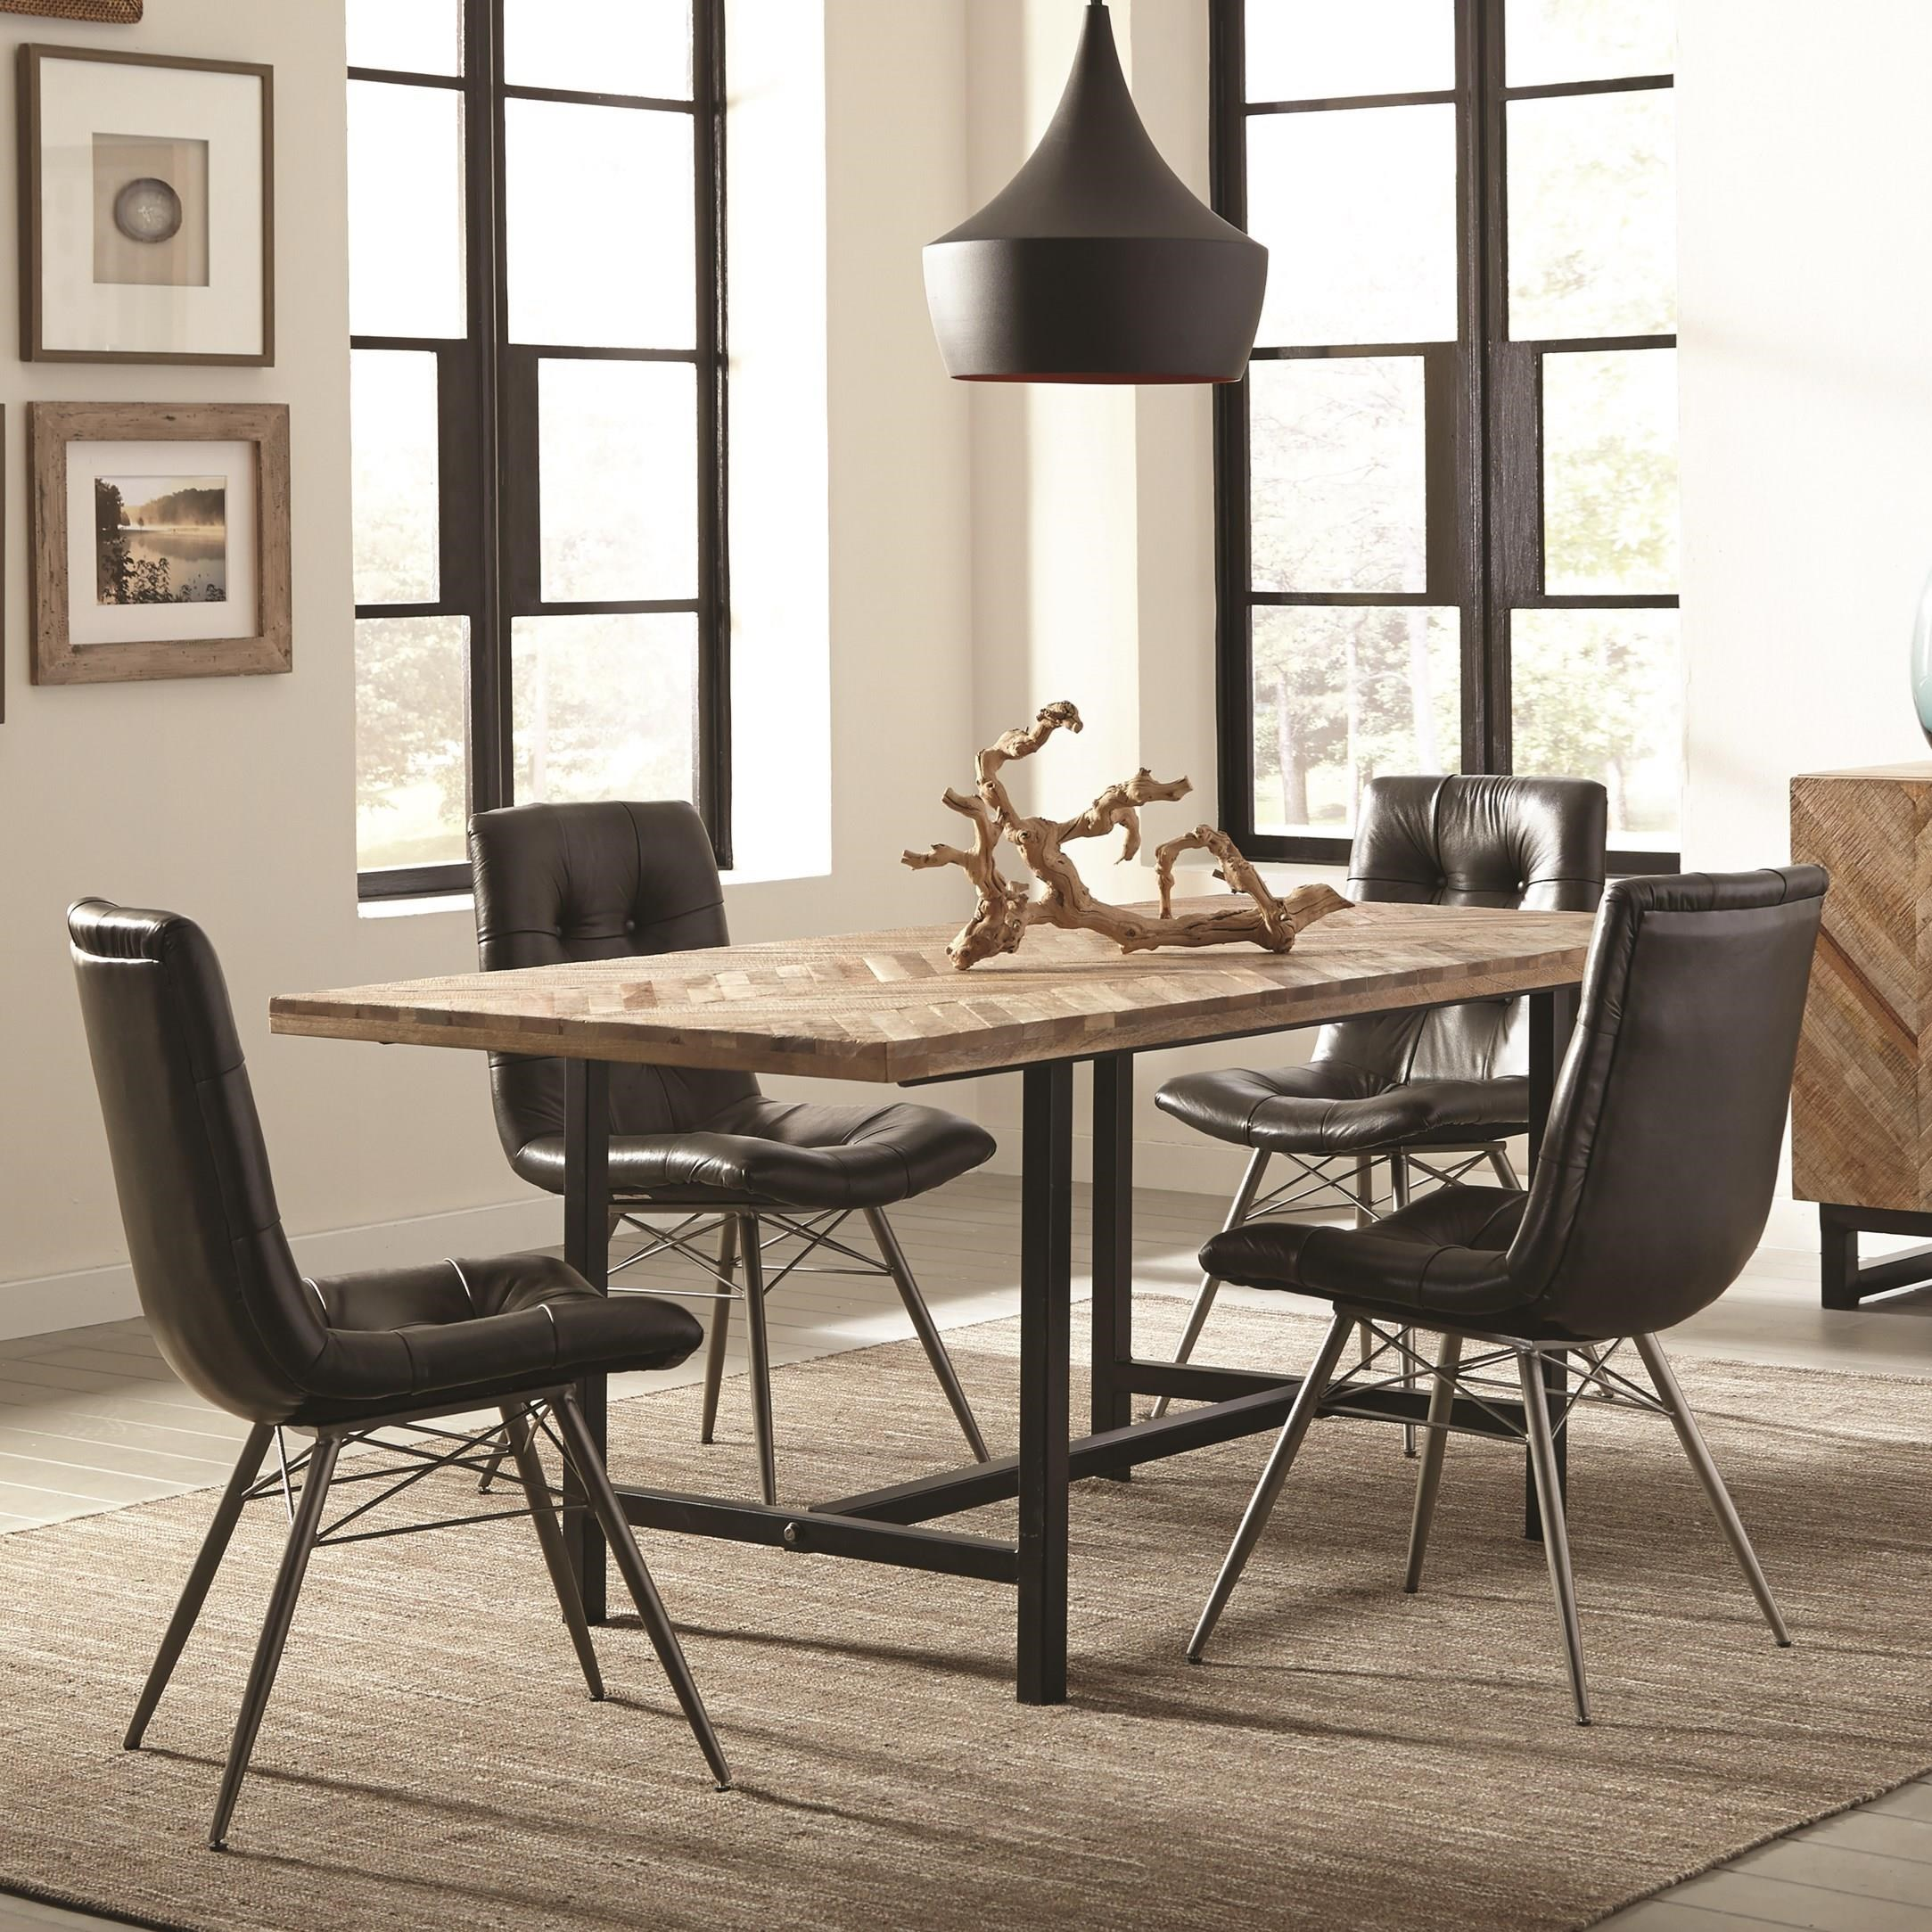 Living And Dining Room Sets: Scott Living Thompson Bohemian Table And Chair Set